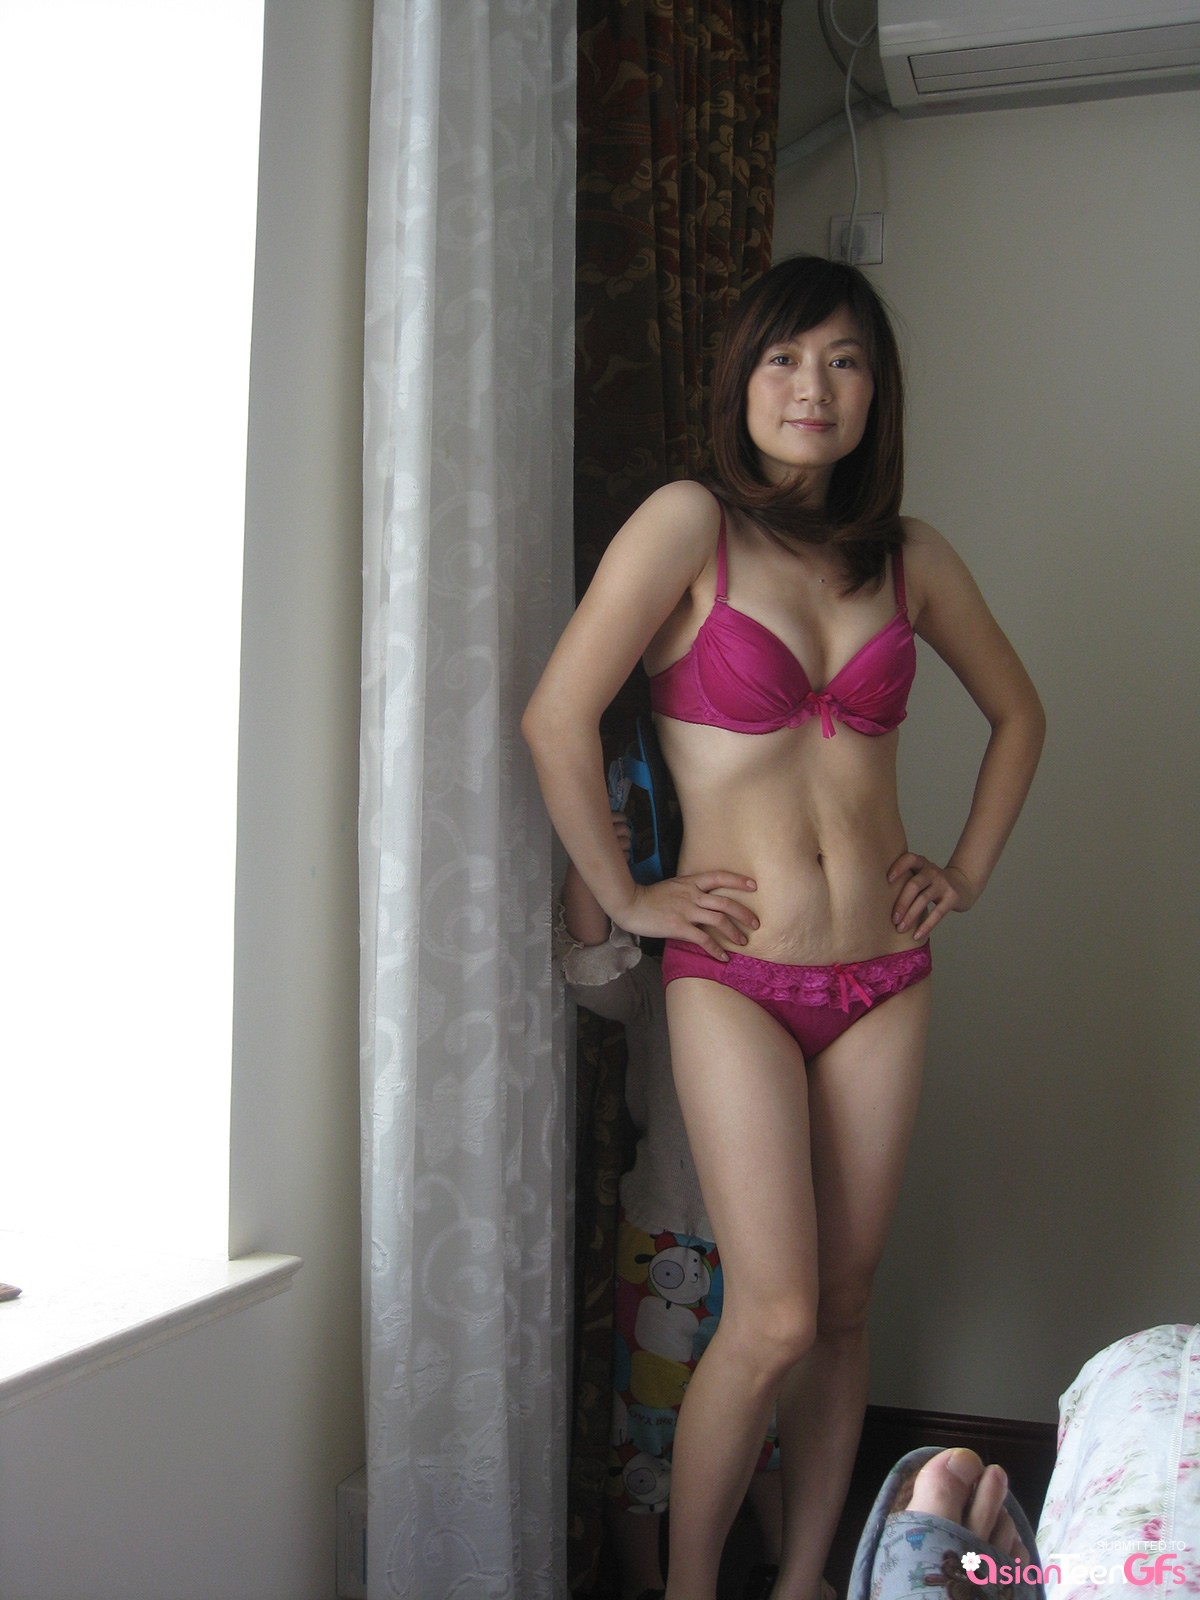 Nice asian girl from vancouver 2 2